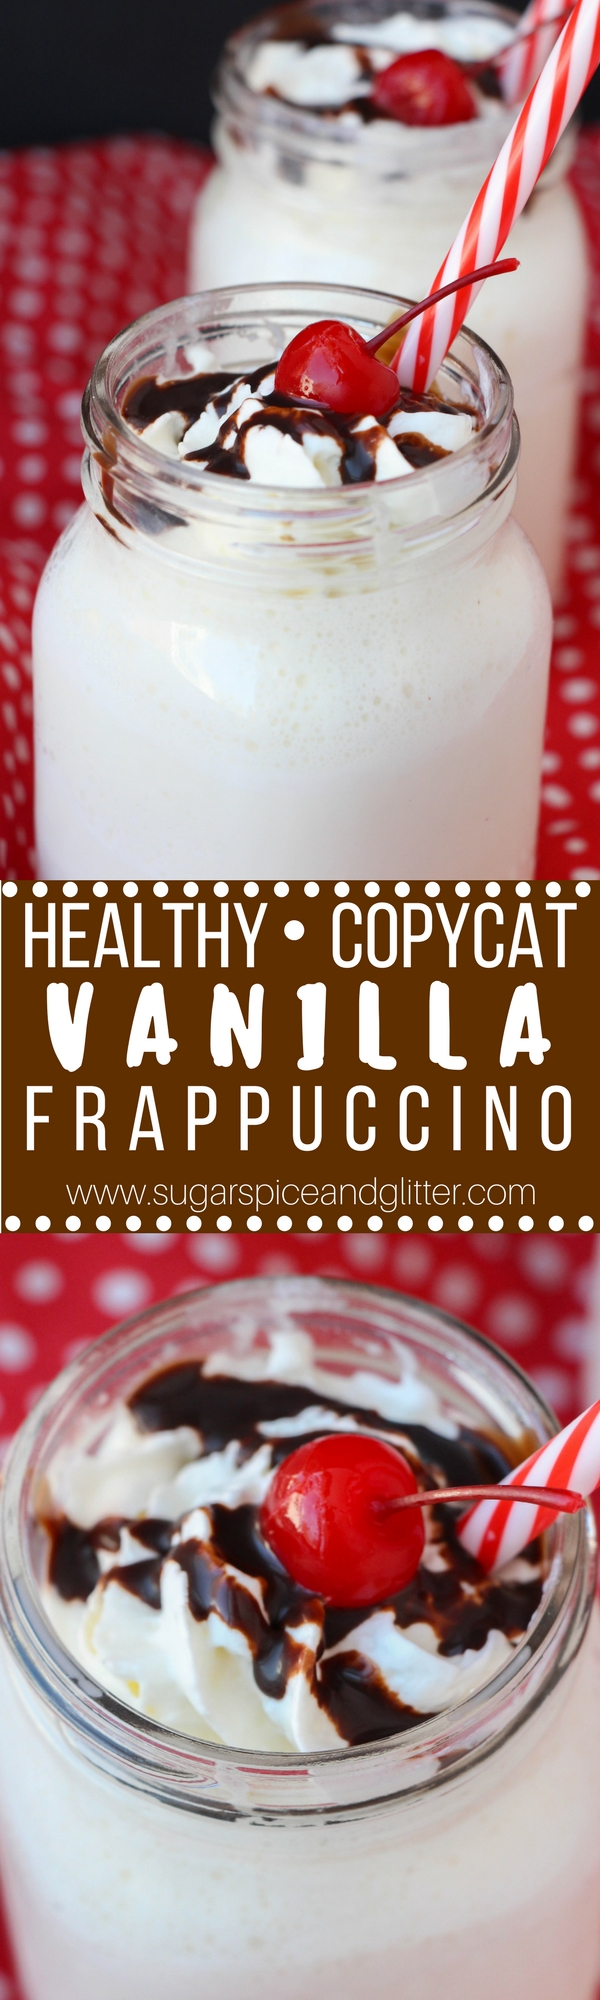 A healthy Starbucks copycat frappuccino - sugarfree with no artificial sweeteners, so you can indulge without guilt